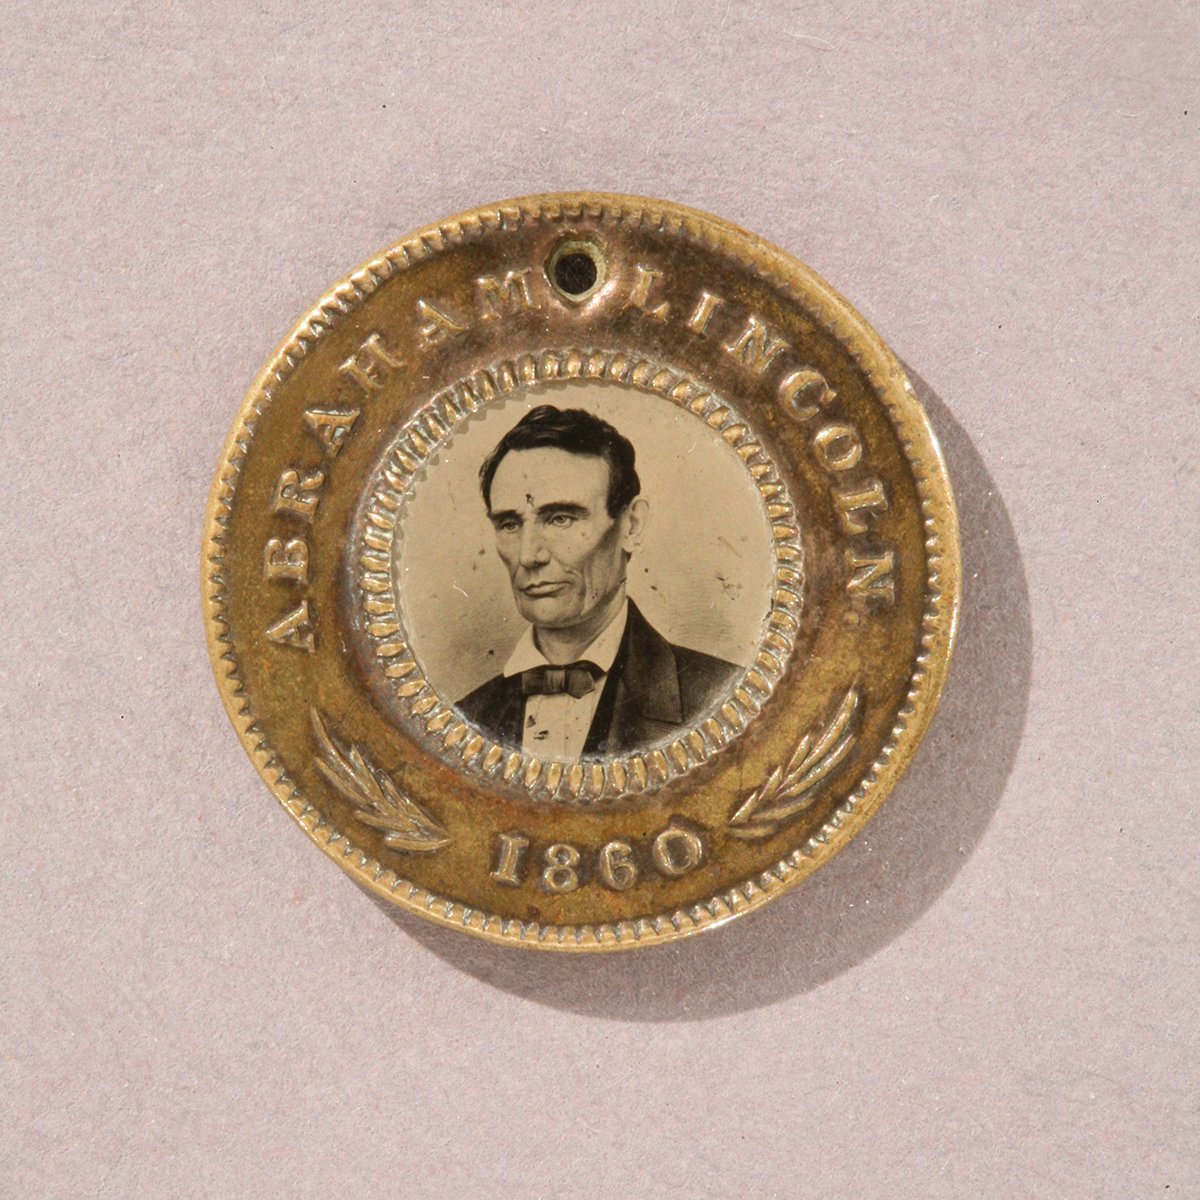 "Round gold token with image of man's shoulders and head in the middle and text ""Abraham Lincoln 1860"" around edge"